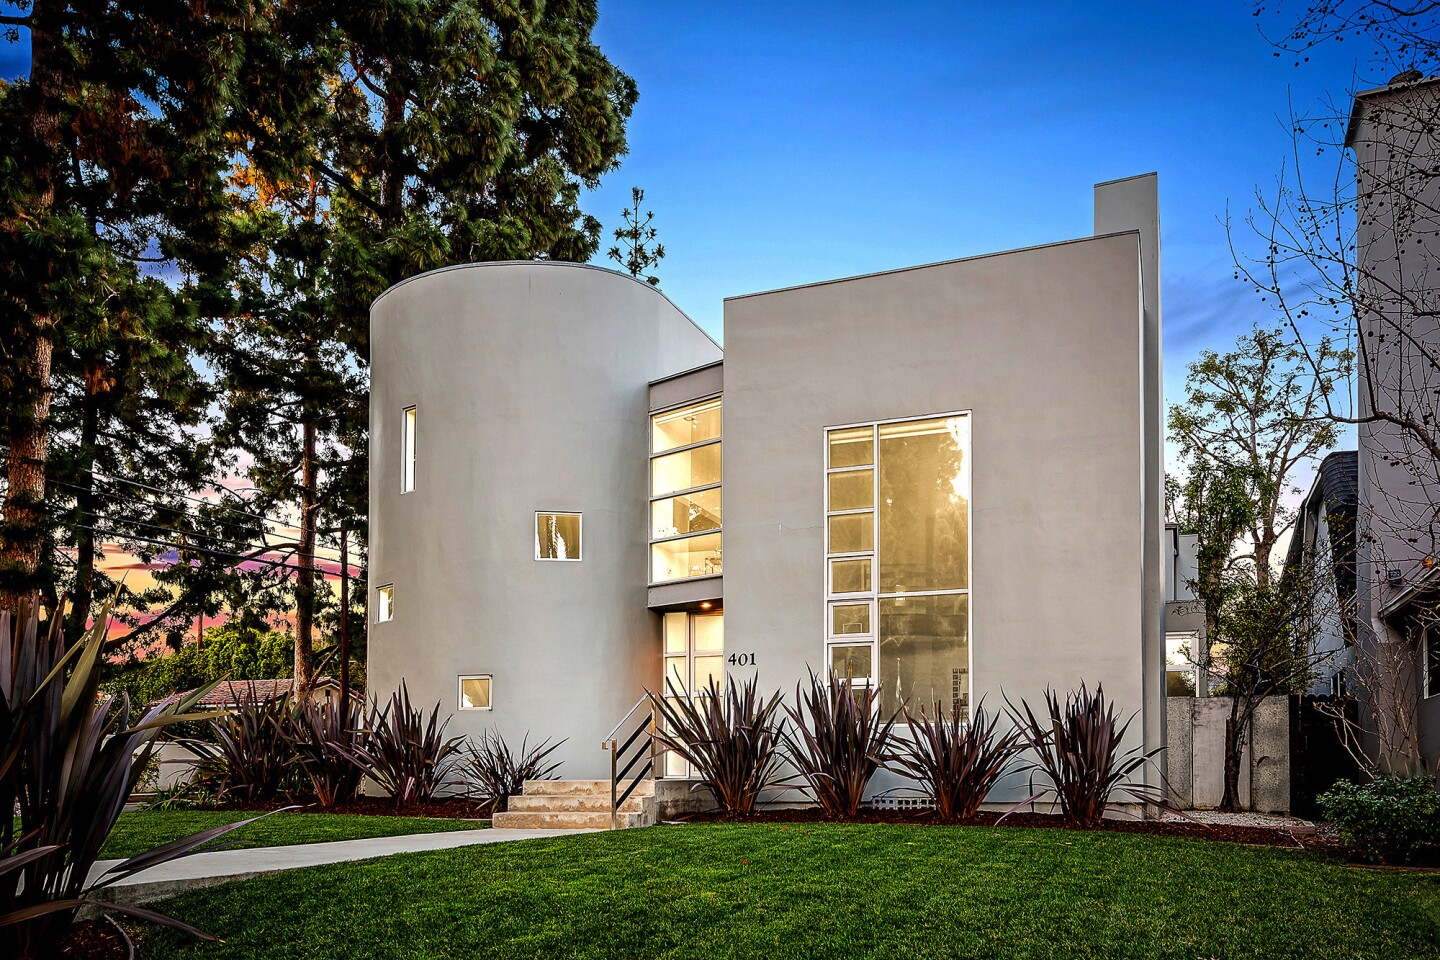 Home of the Week | Santa Monica modern is an ode to Le Corbusier